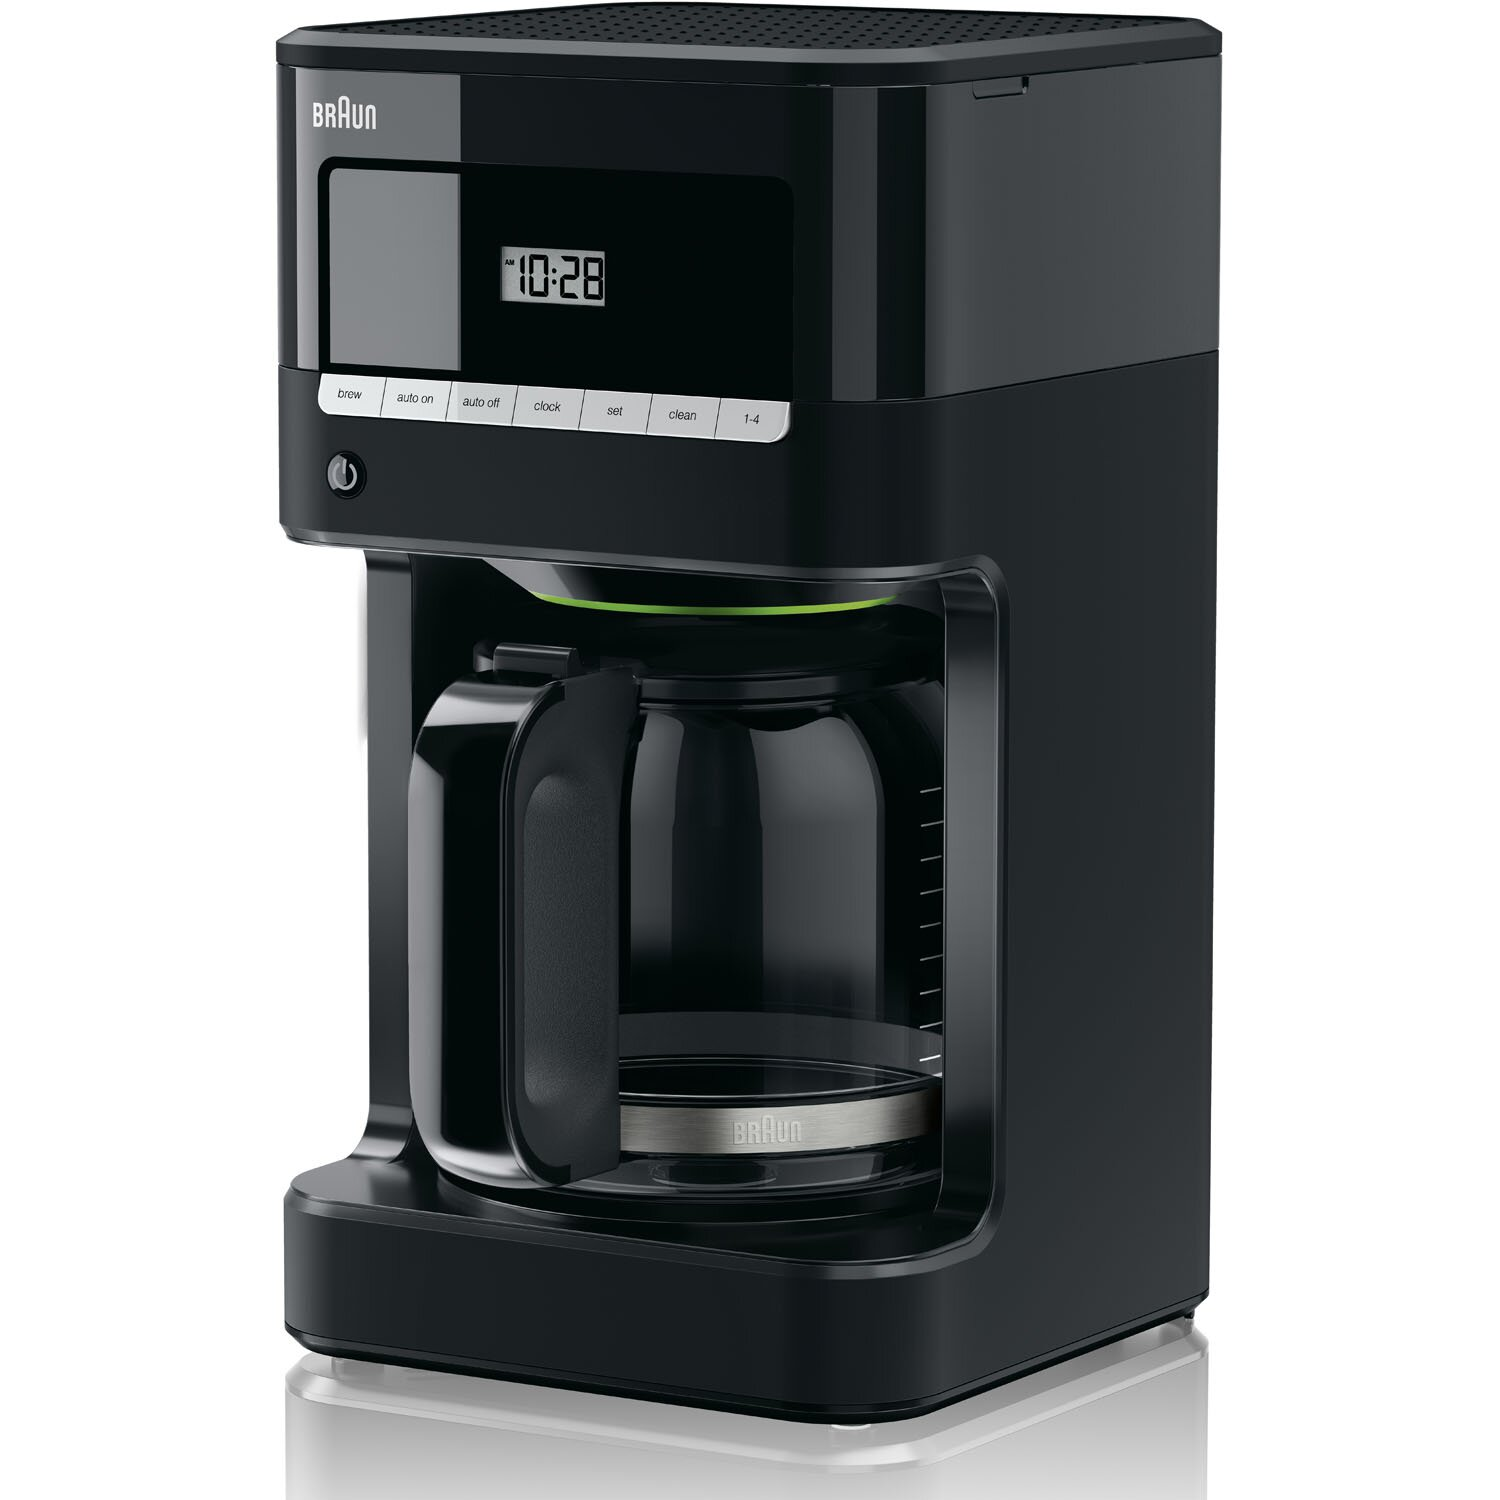 Braun brewsense 12 cup drip coffee maker wayfair for Apartment size coffee maker